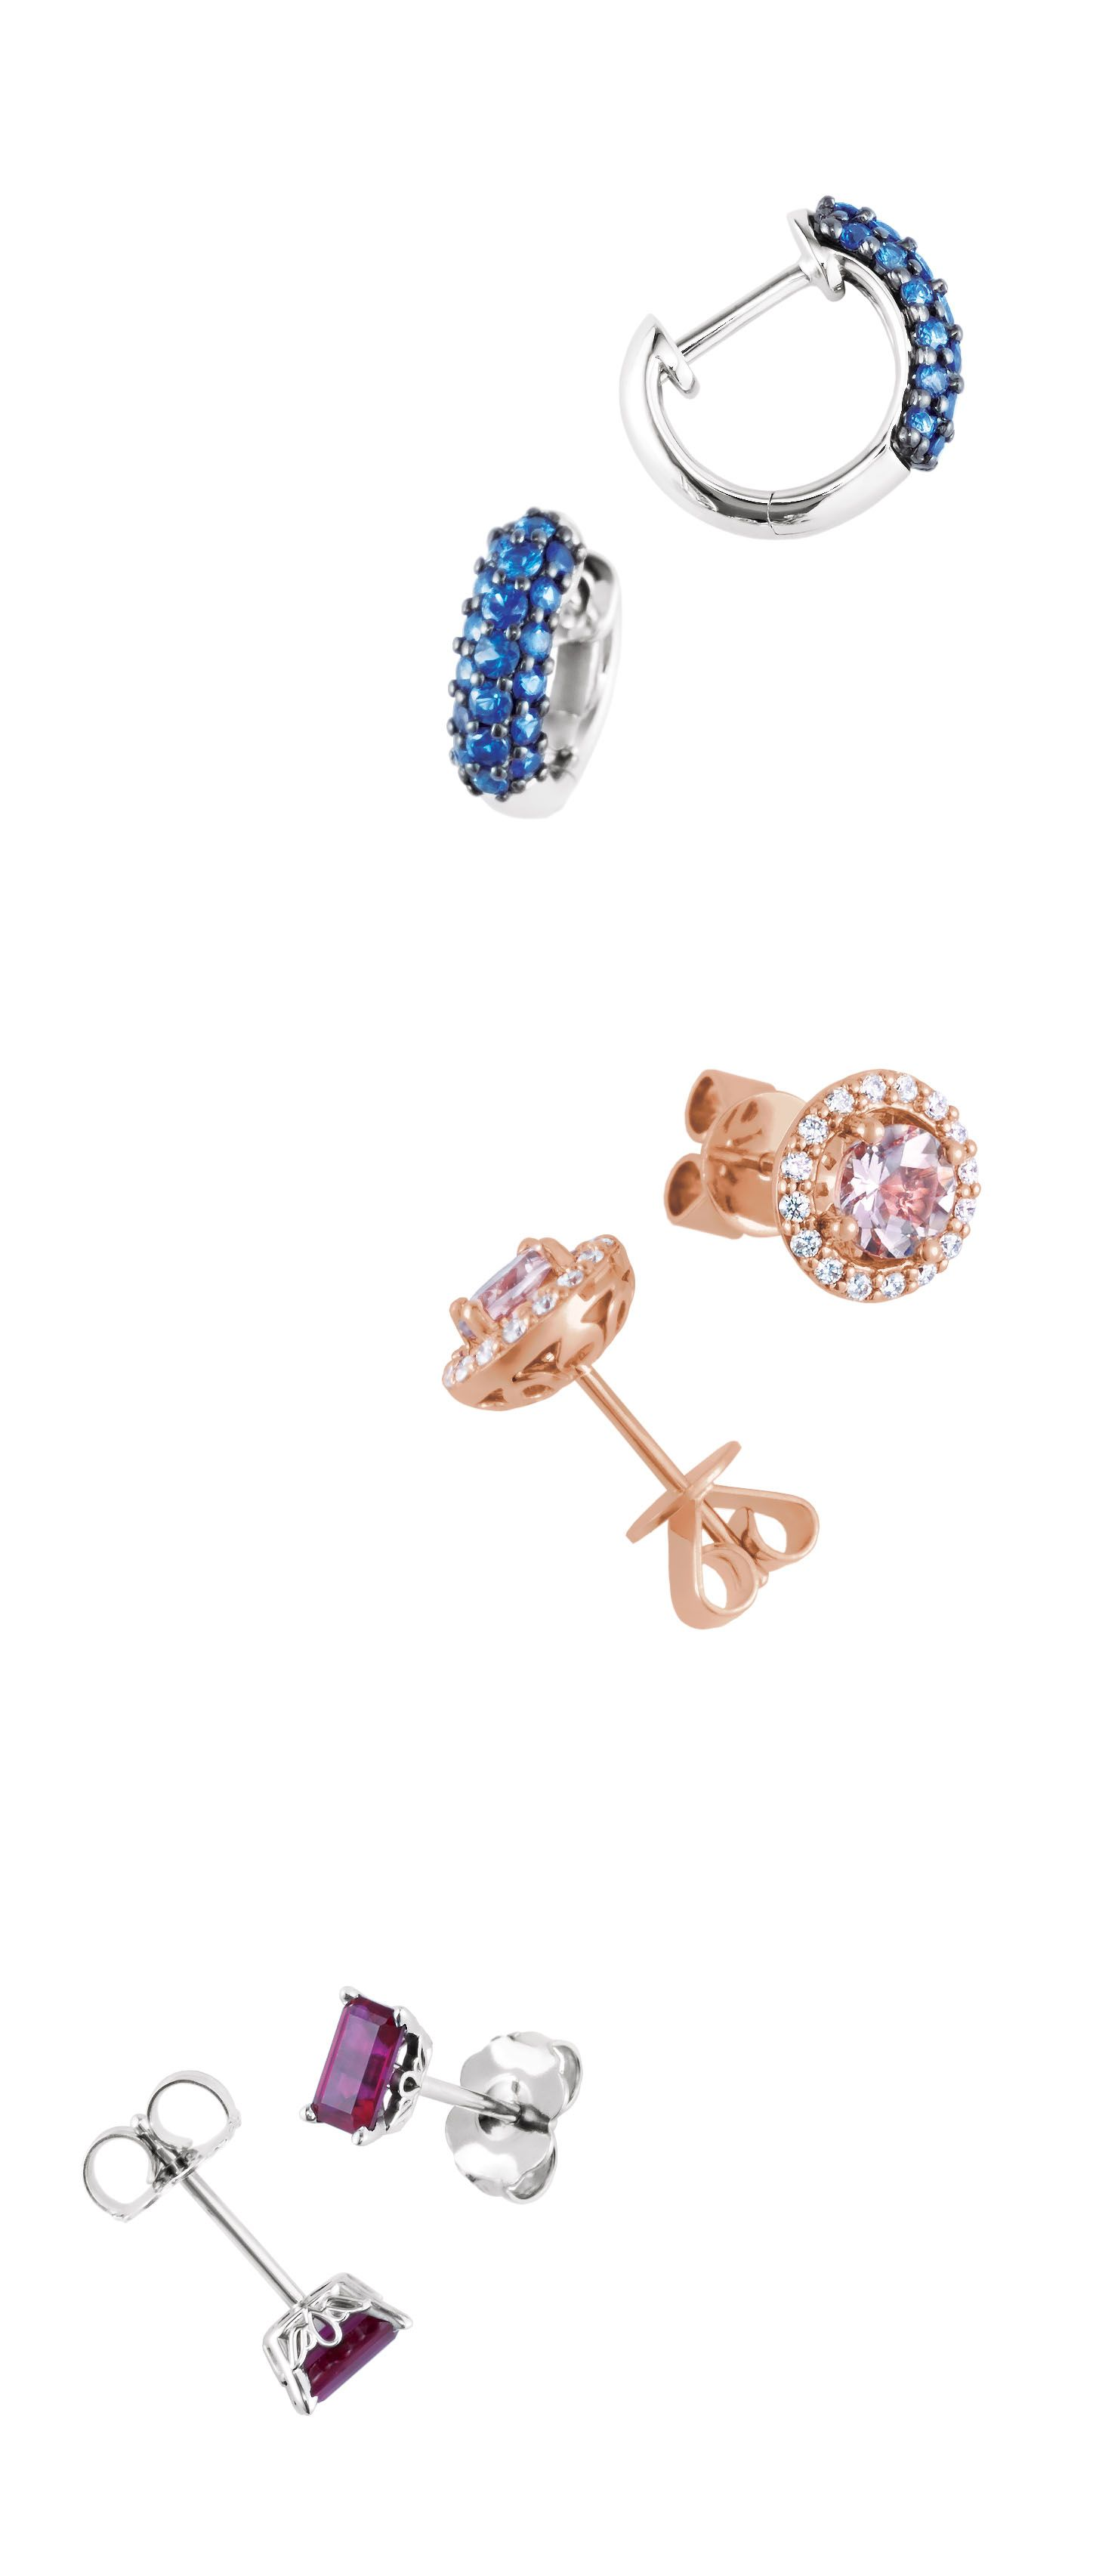 Gemstone Earring Styles That We Love! Click through to explore ...